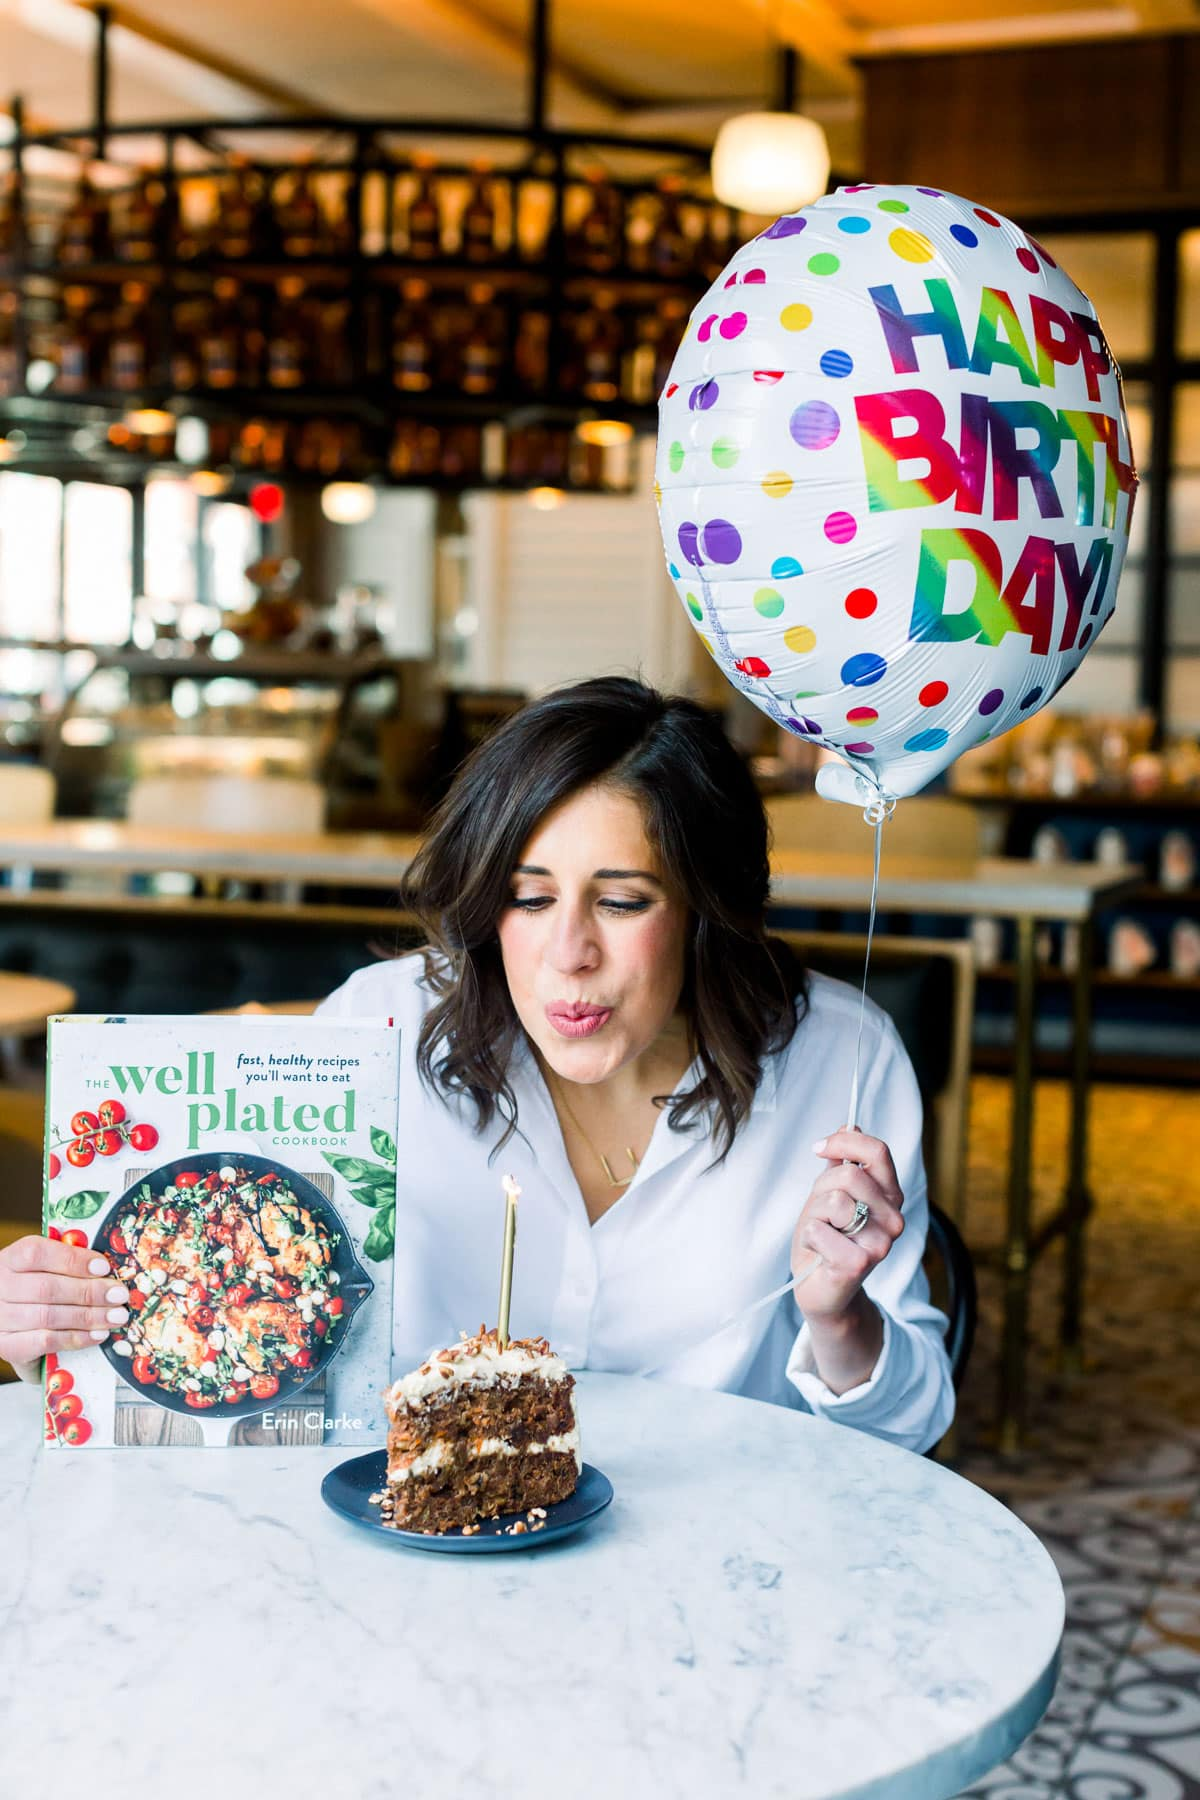 Erin Clarke blowing out a candle with a copy of The Well Plated Cookbook and a birthday balloon